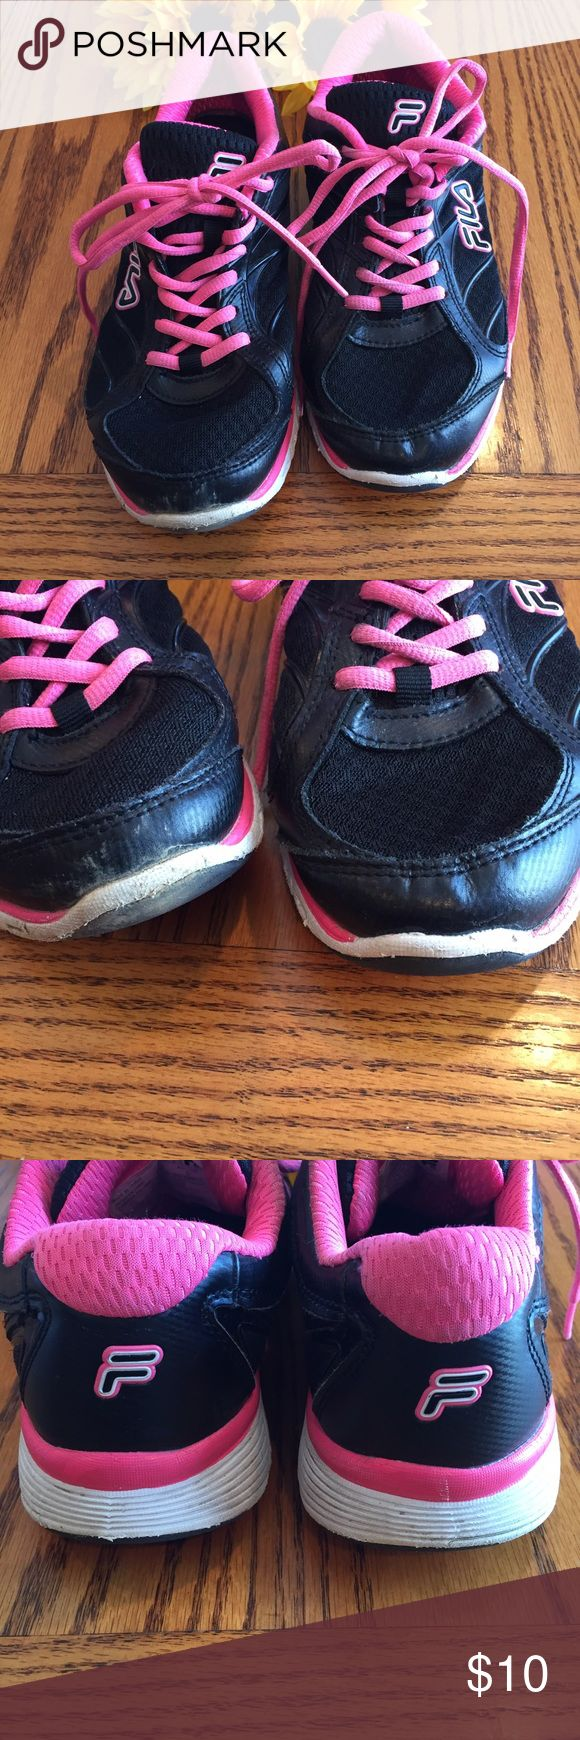 Fila Pink and black sneakers   Size 7 1/2 Fila Pink and black sneakers   Size 7 1/2. Worn but a lot of life left. Fila Shoes Sneakers